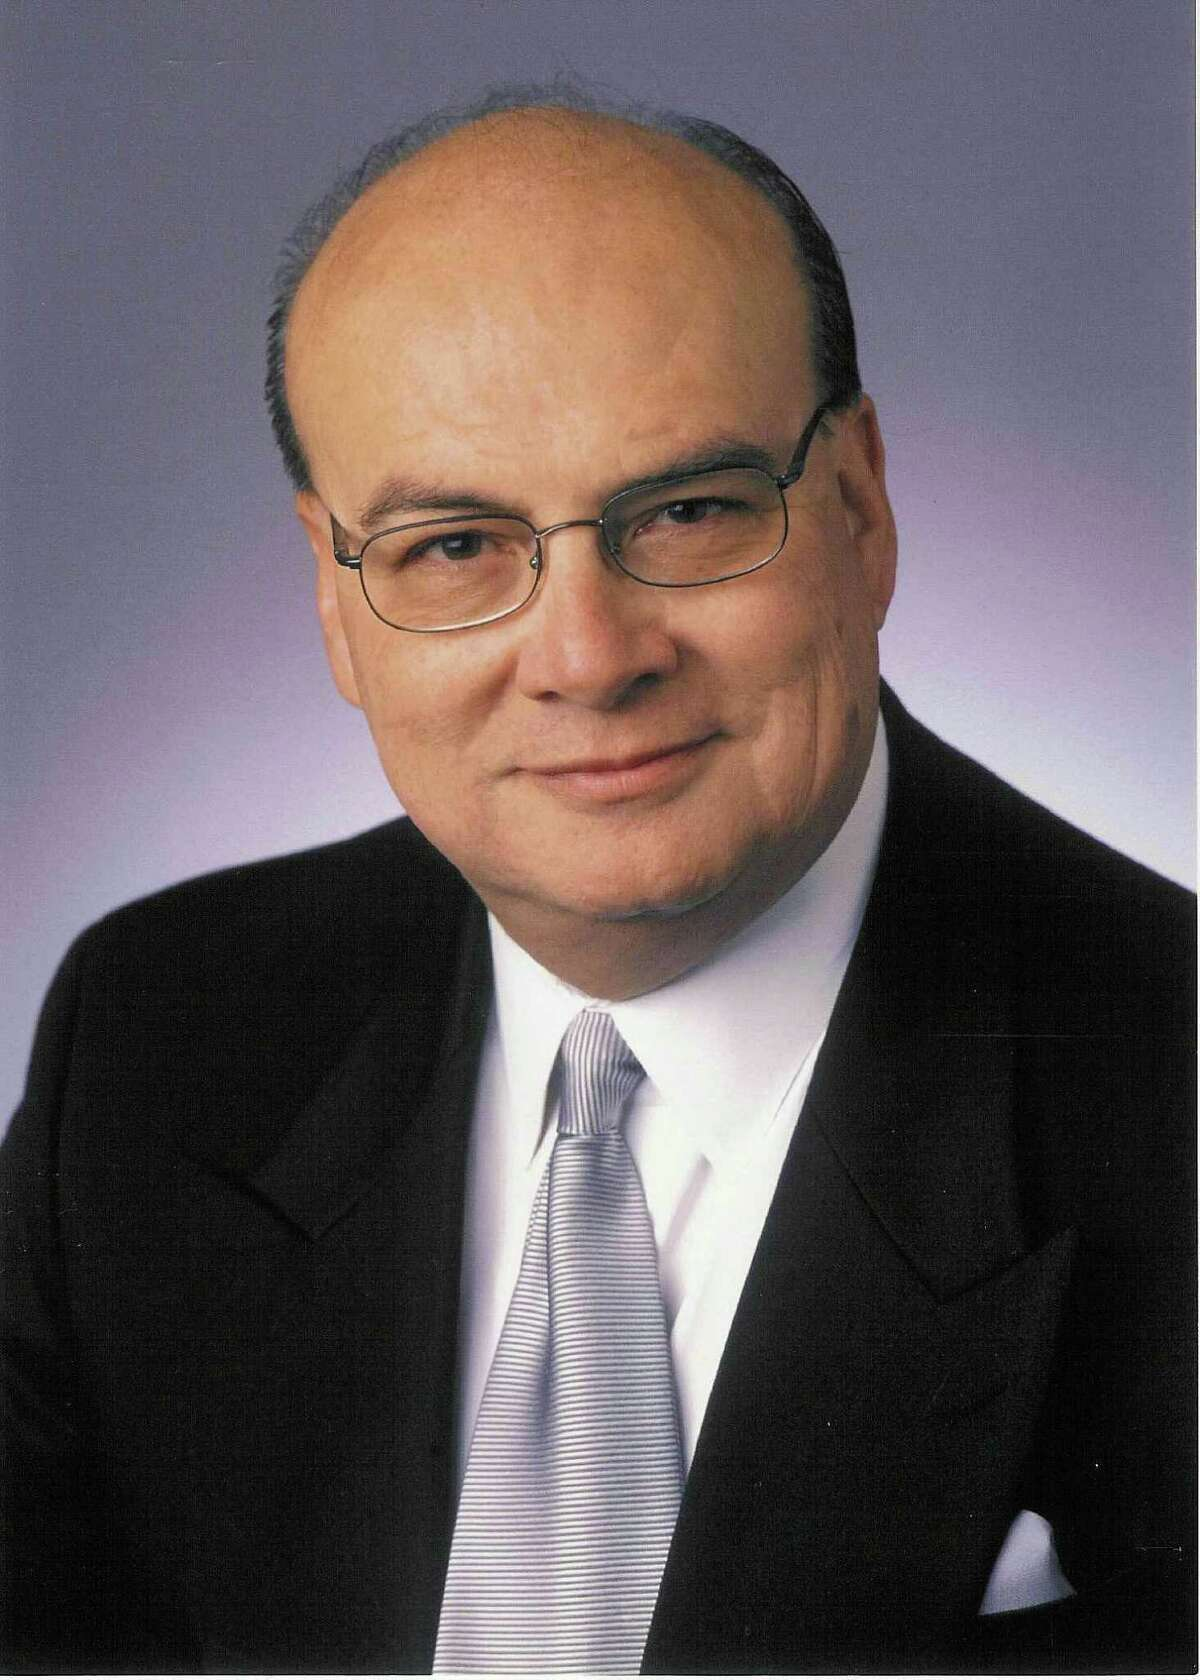 Arthur Rojas Emerson has been named president and CEO of KLRN-TV.